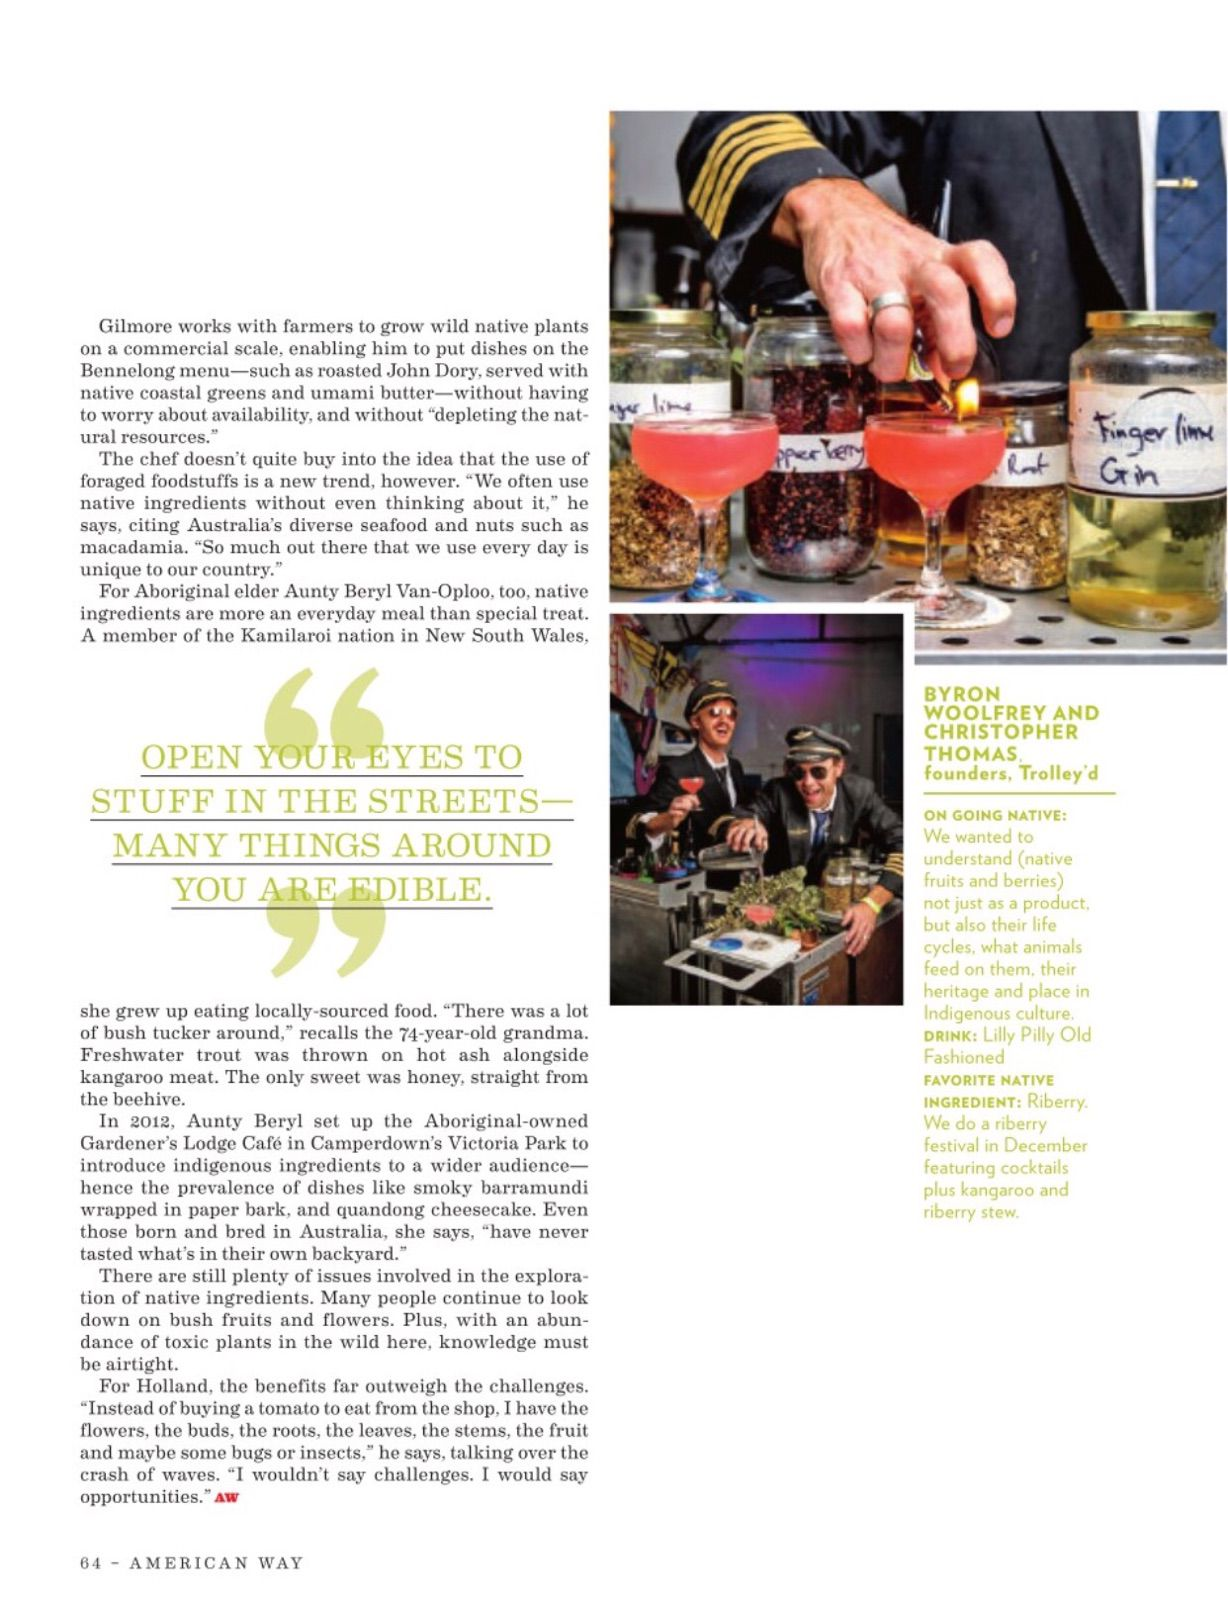 Two photos in the March issue of American Way drew complaints for depicting bartenders in pilots' uniforms. The photos were removed.